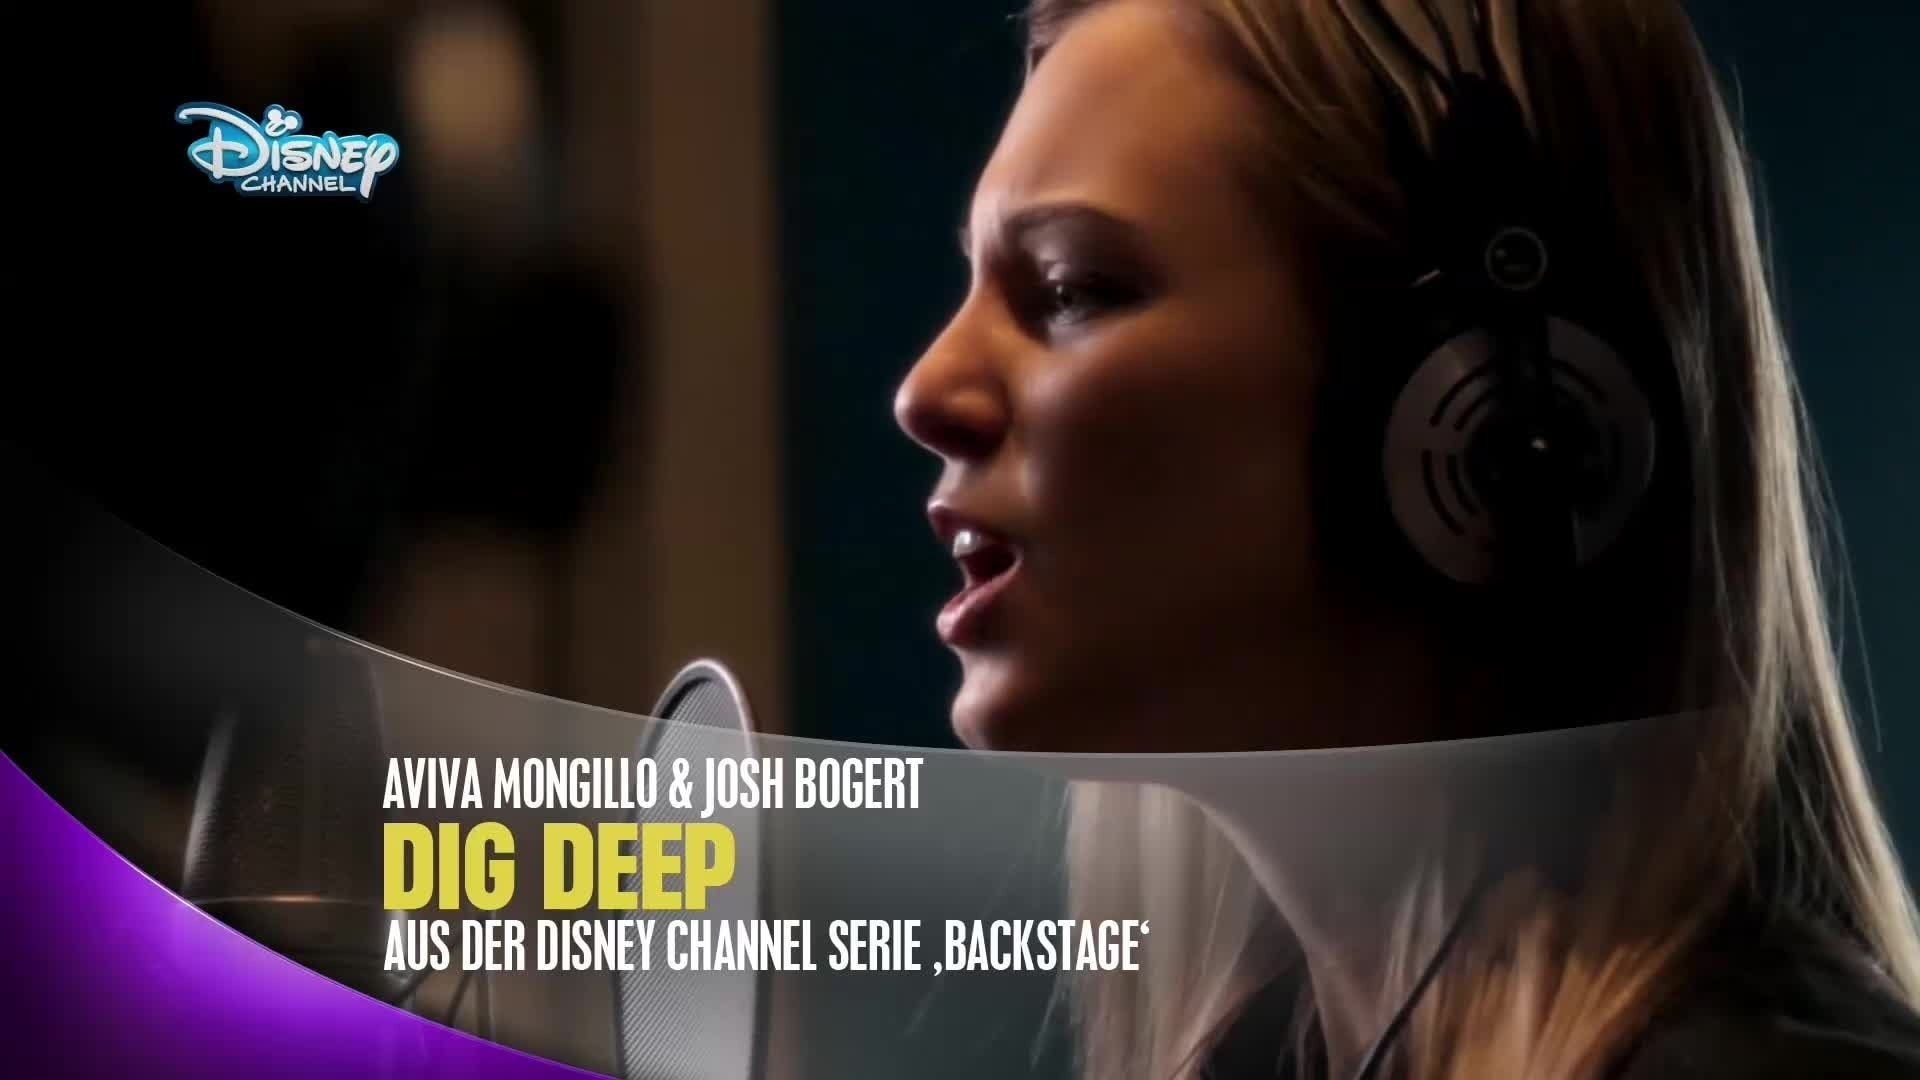 Backstage - Song 'Dig Deep'